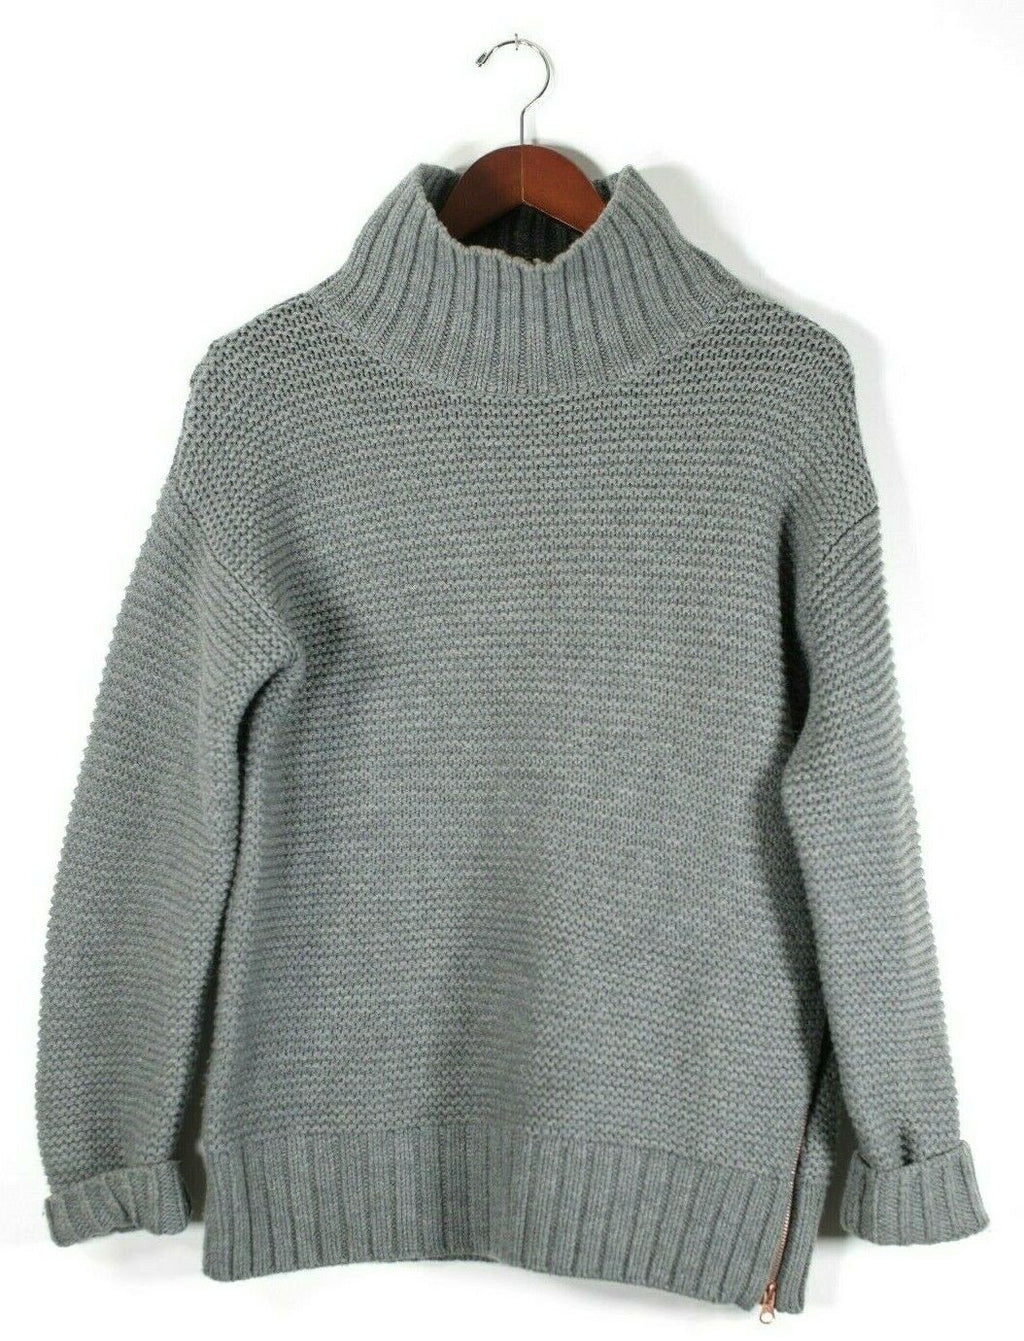 Lululemon Karma Kurmasana Size 6 Heathered Grey Sweater